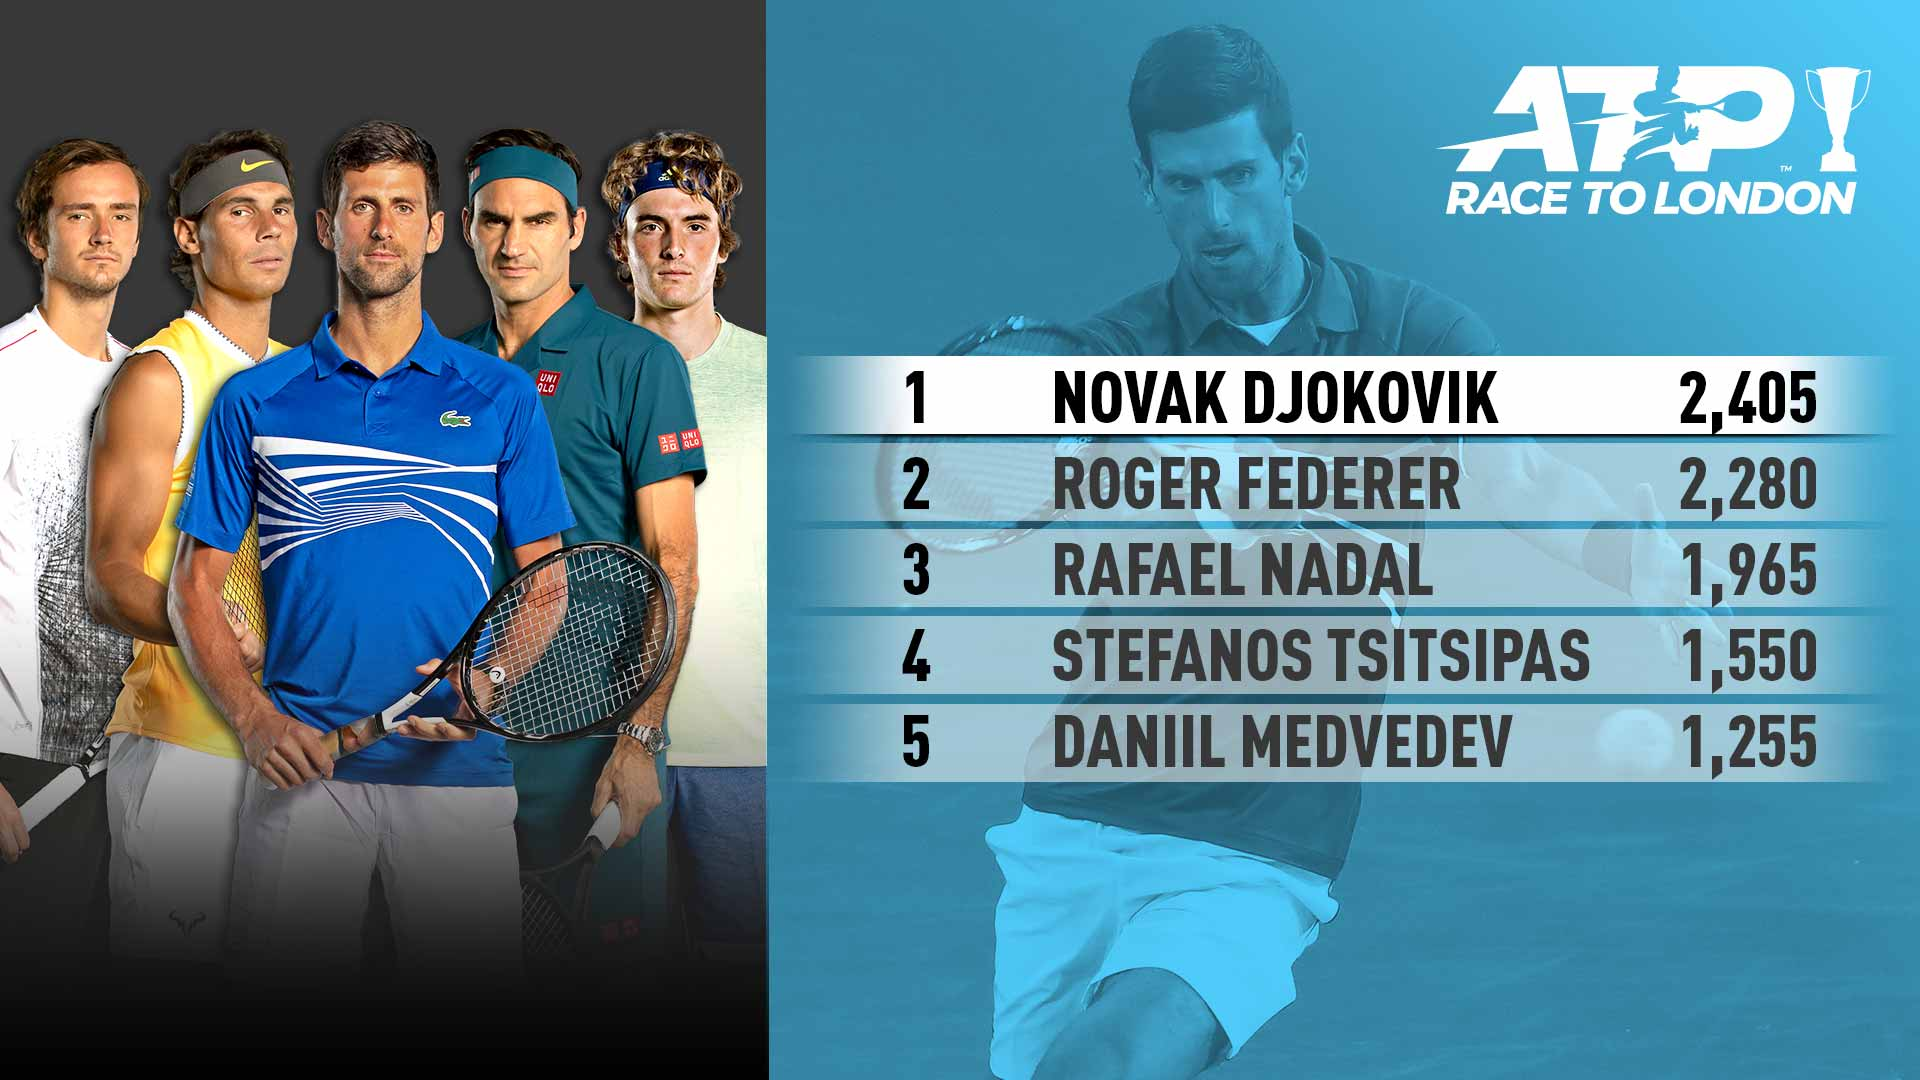 Medvedev, Nadal, Djokovic, Federer, Tsitsipas are among the Top 5 in the 2019 ATP Race To London.